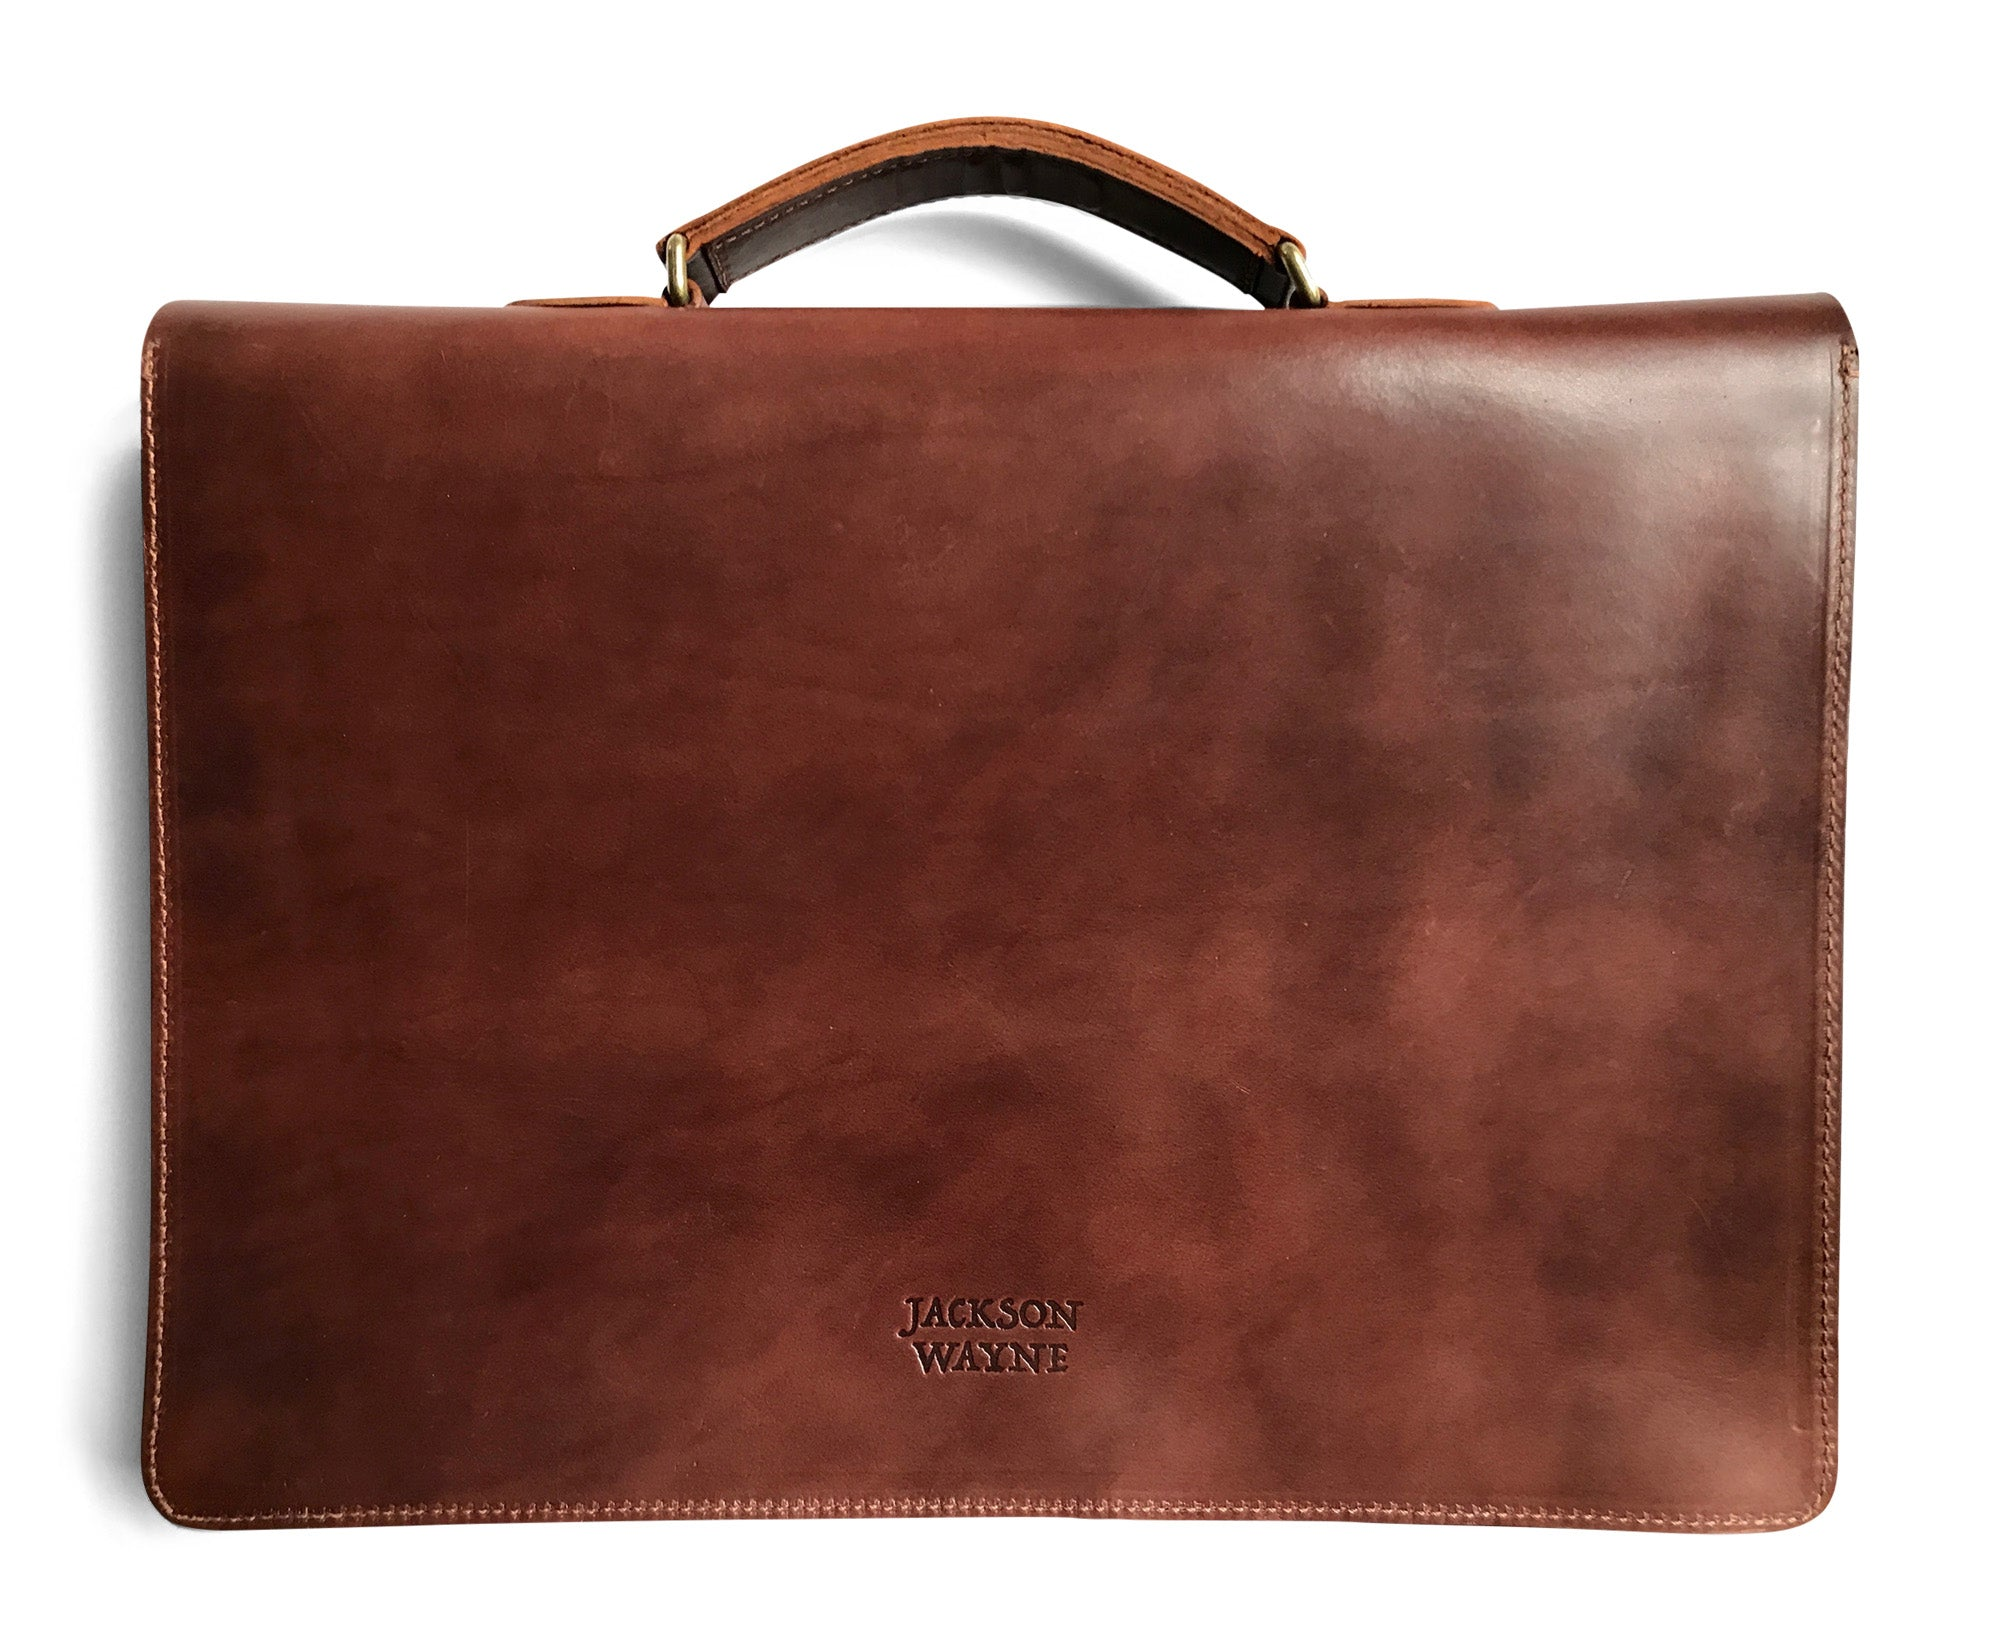 Full Grain Leather Briefcases Amp Bags Made In Usa By